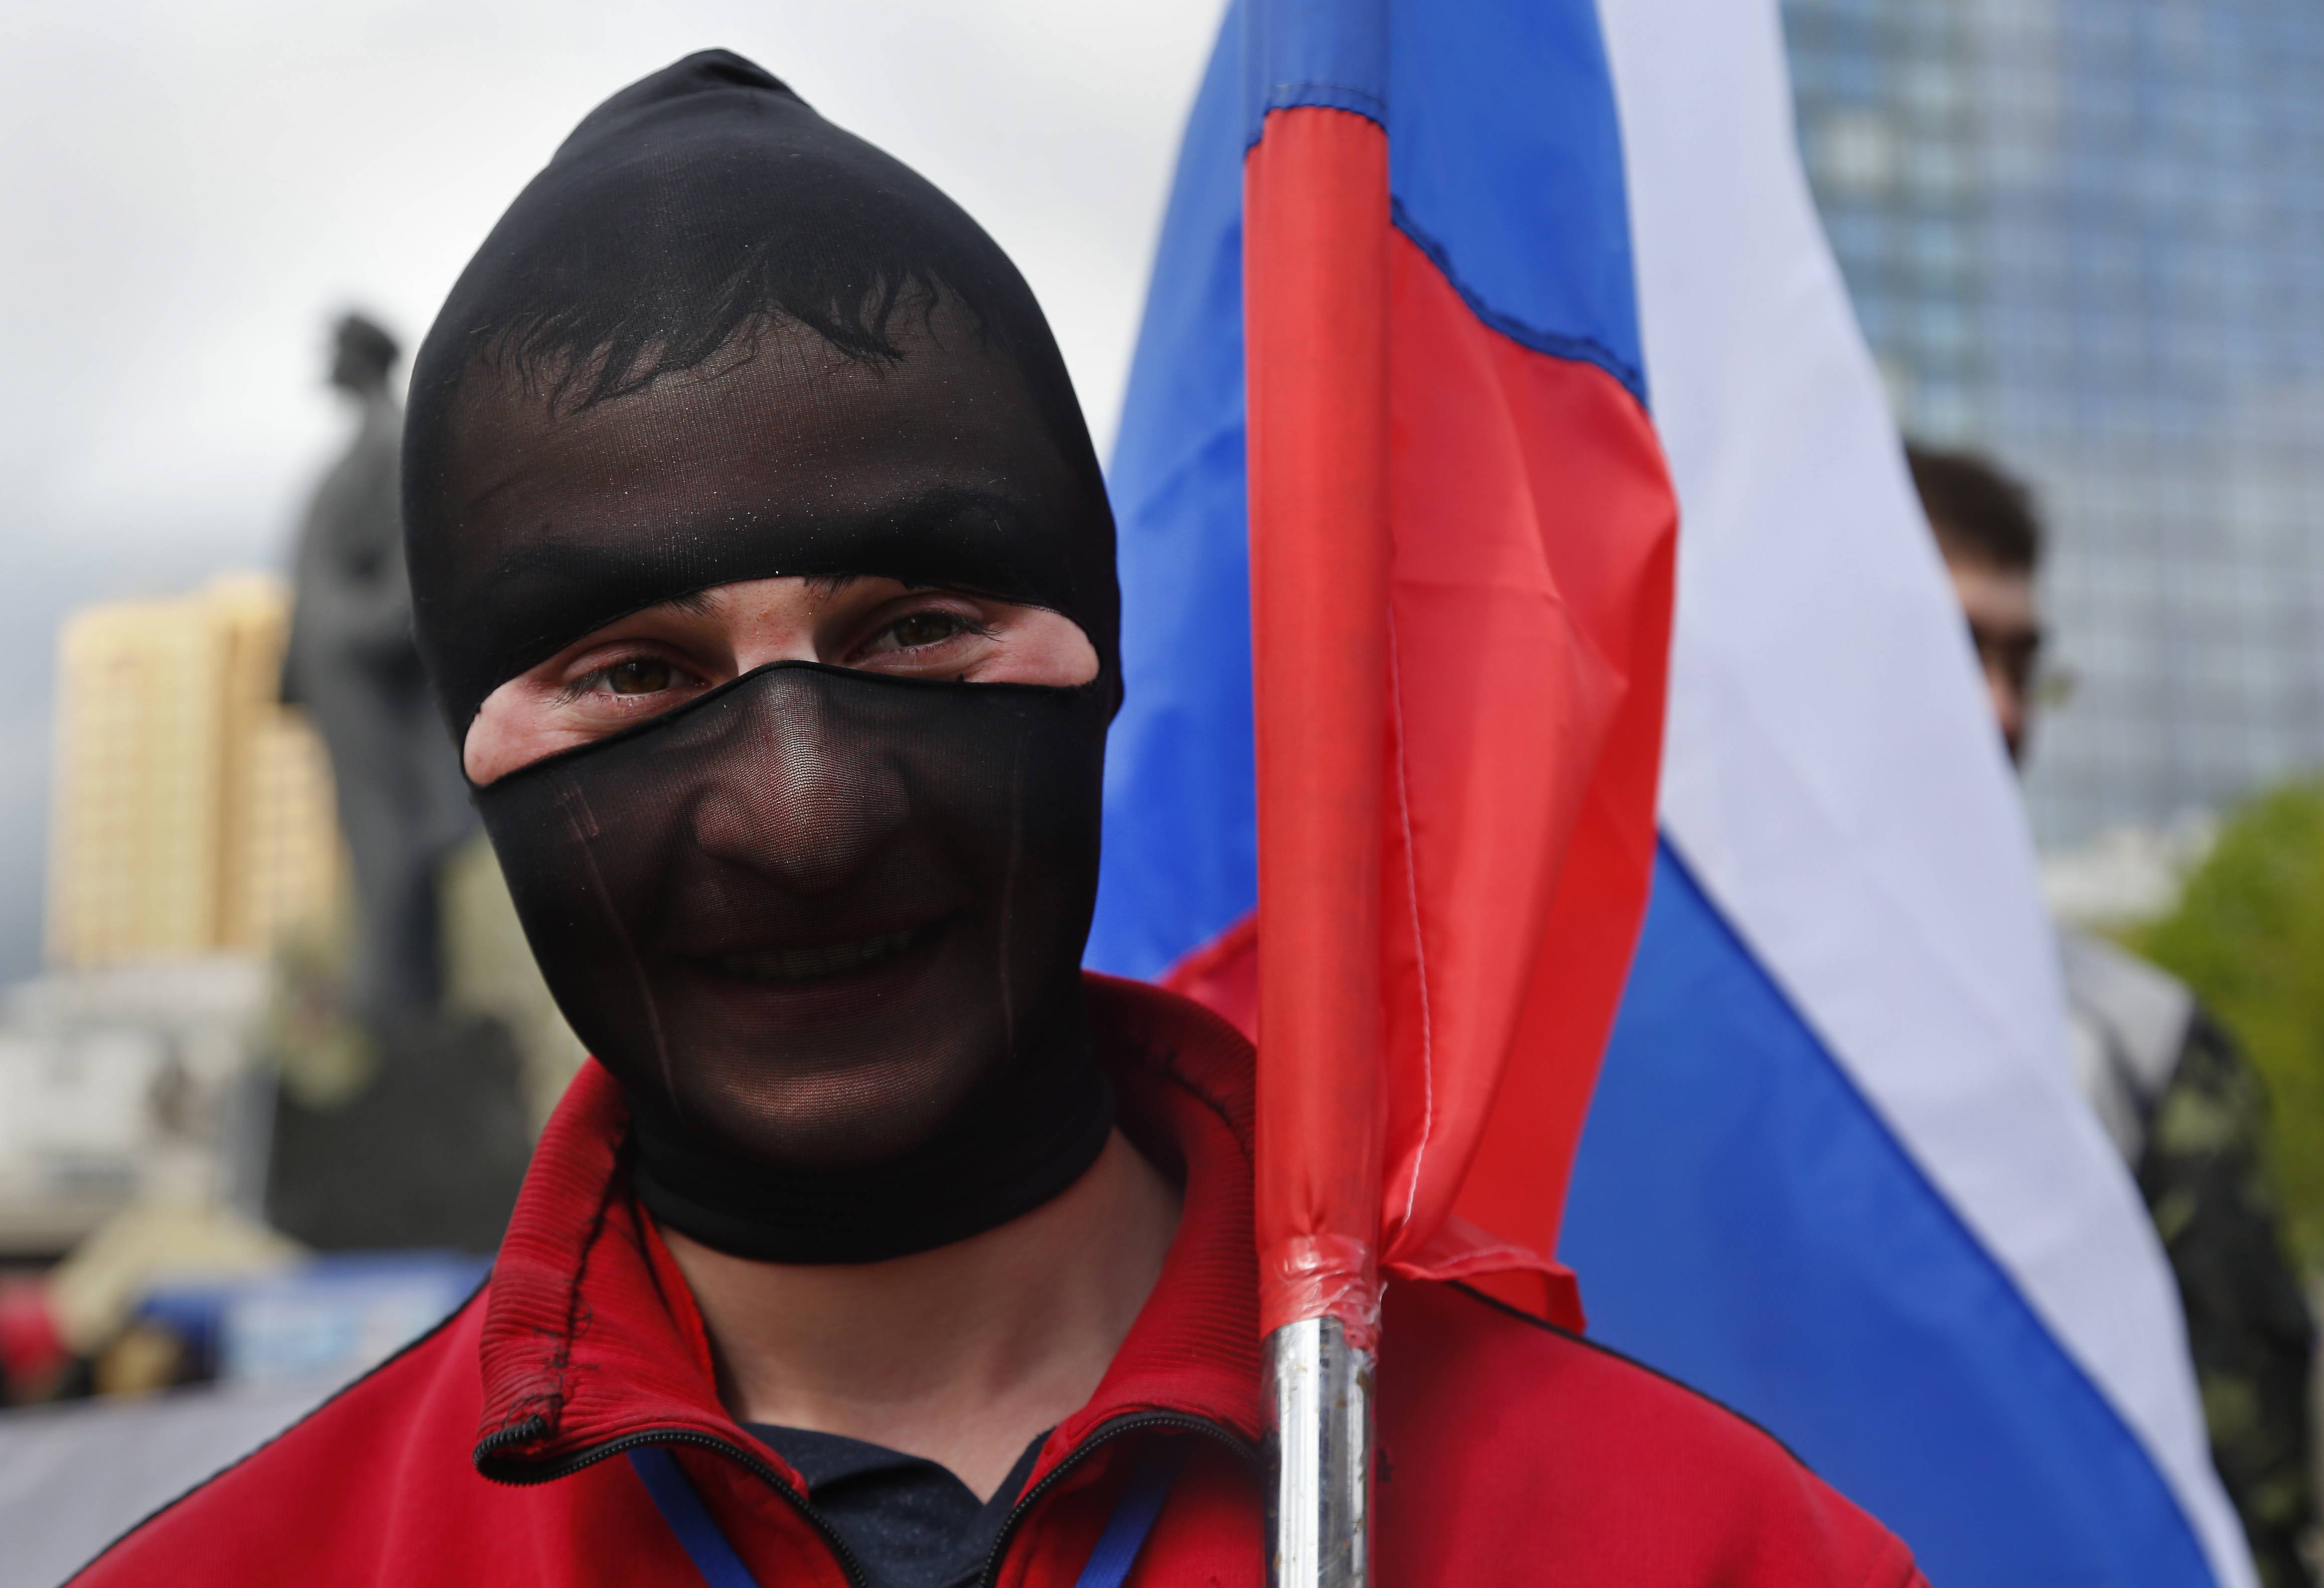 A pro Russian supporter with his face covered, holds a Russian flag in Donetsk, eastern Ukraine, Tuesday.